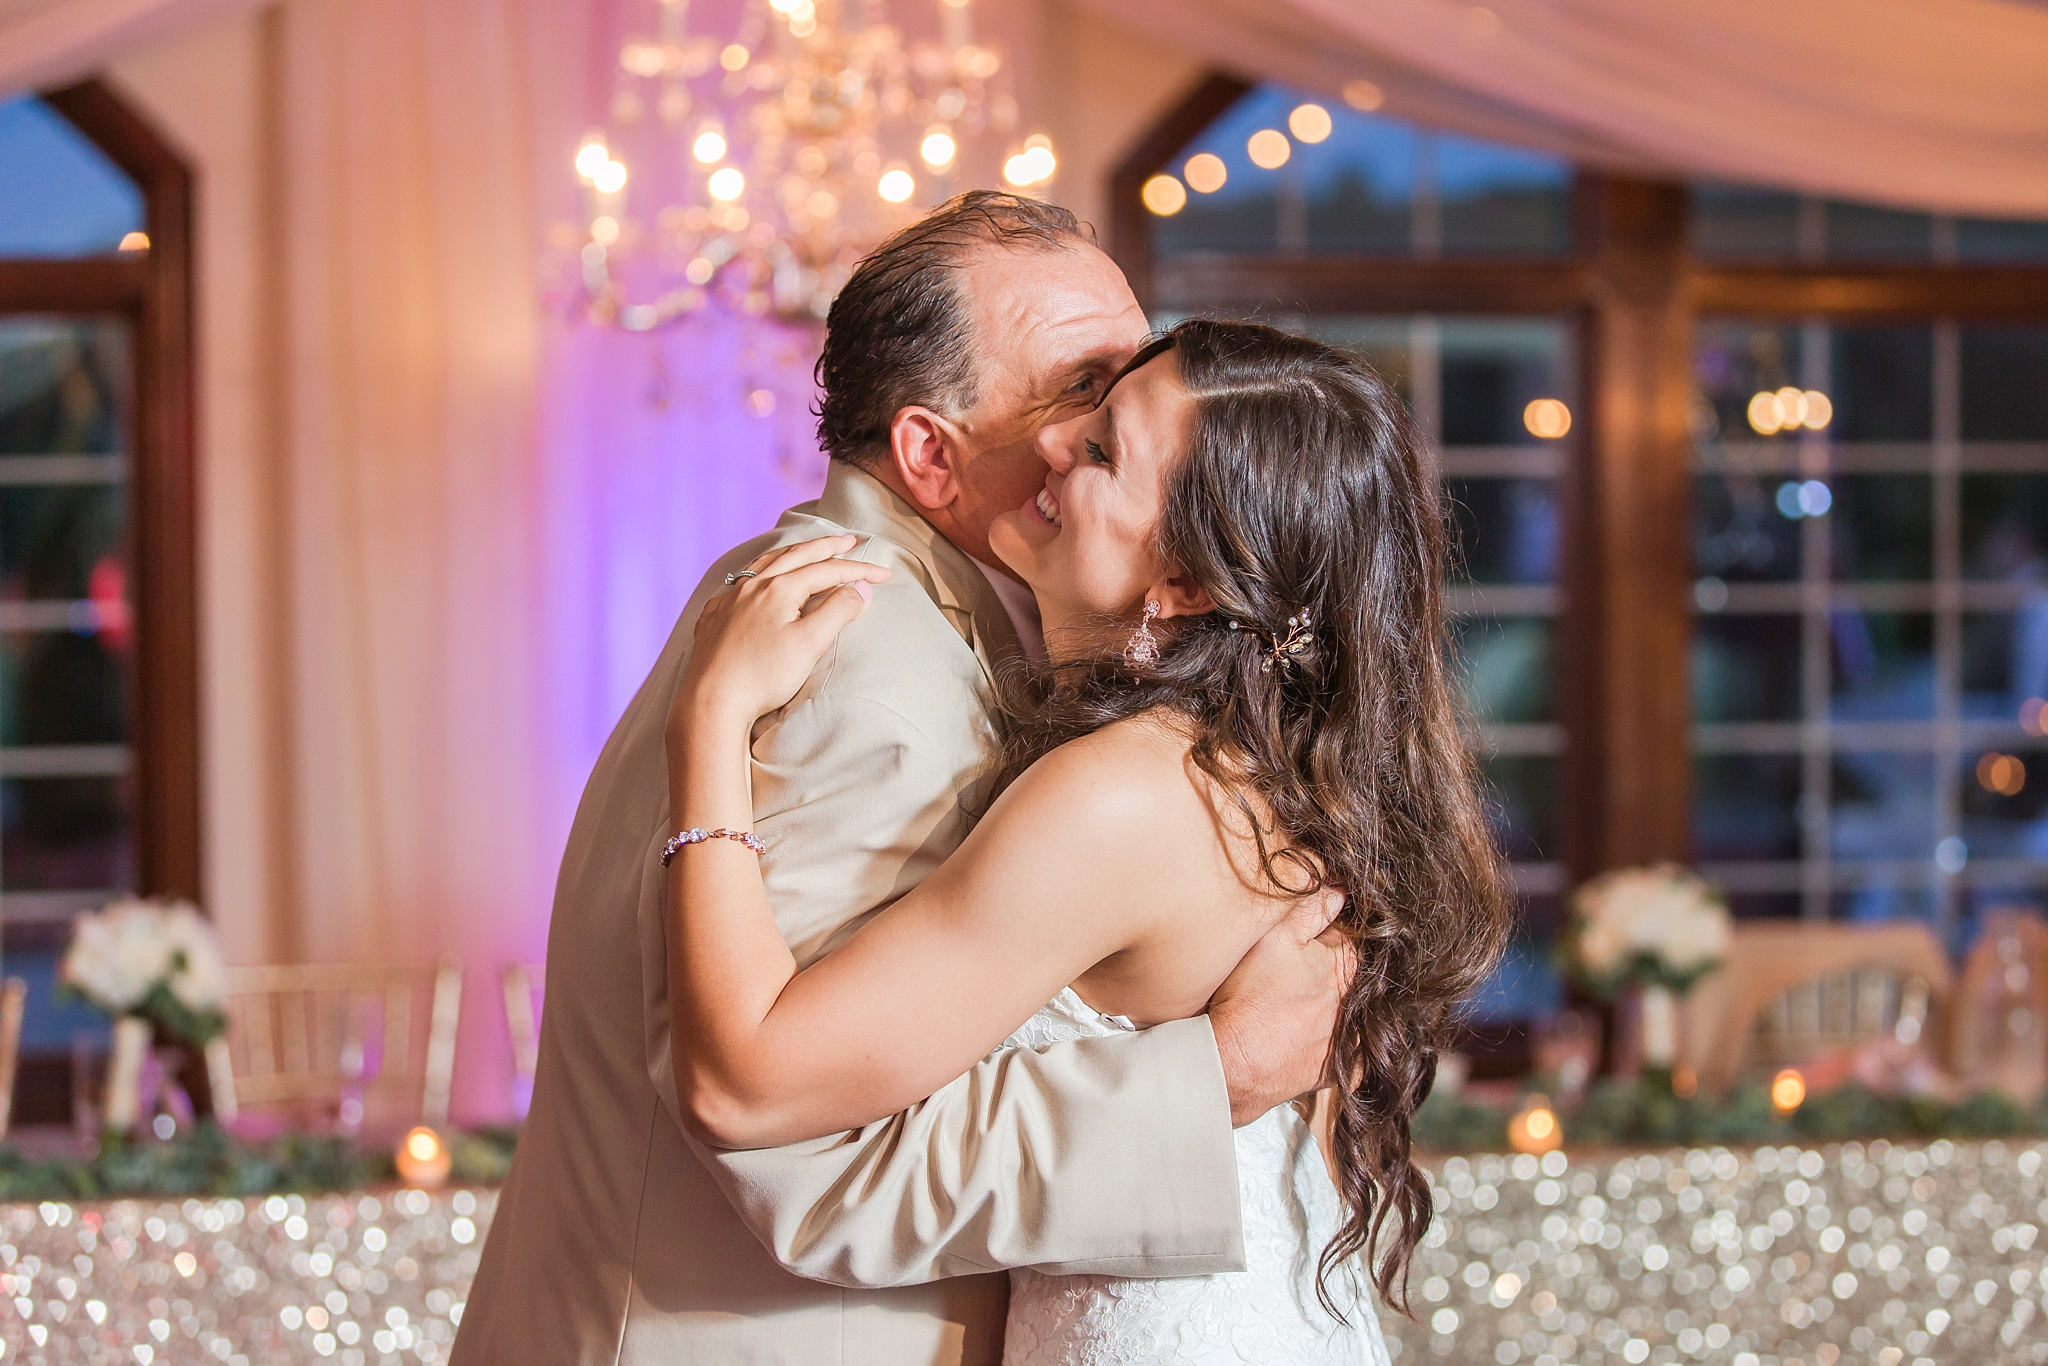 candid-timeless-wedding-photos-at-the-captains-club-in-grand-blanc-michigan-by-courtney-carolyn-photography_0107.jpg